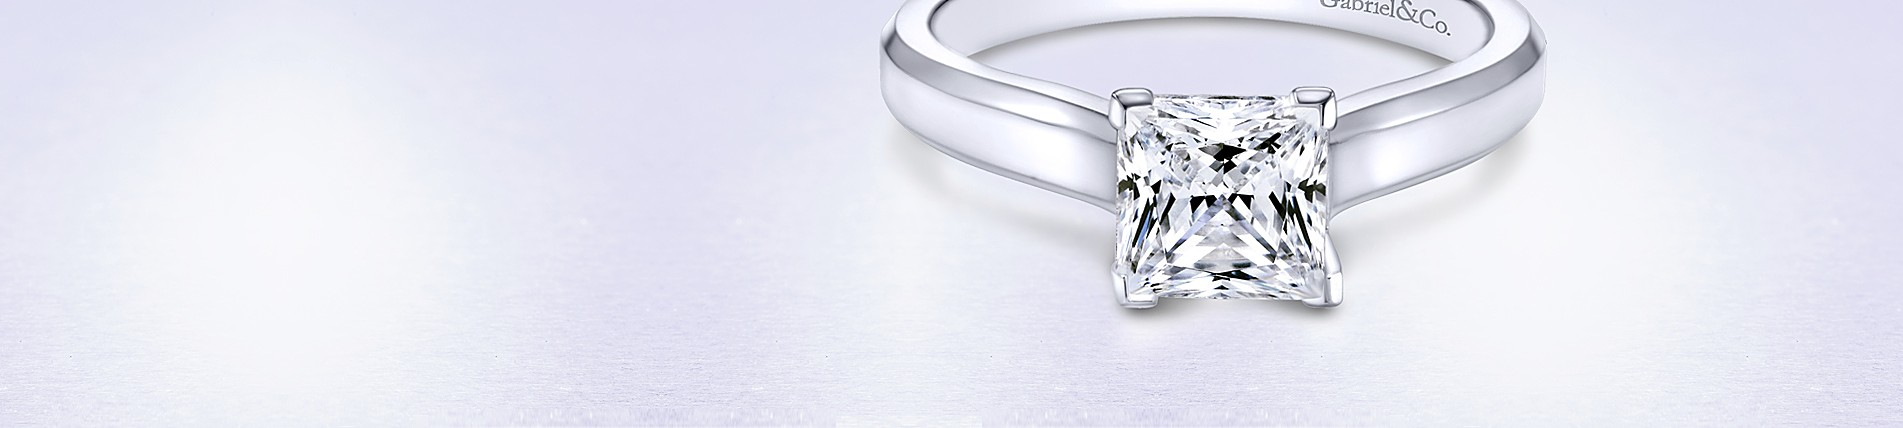 from rings ring prong solitaire simulated buy com for aliexpress classic engagement store band sterling wedding women silver colorfish female carat product